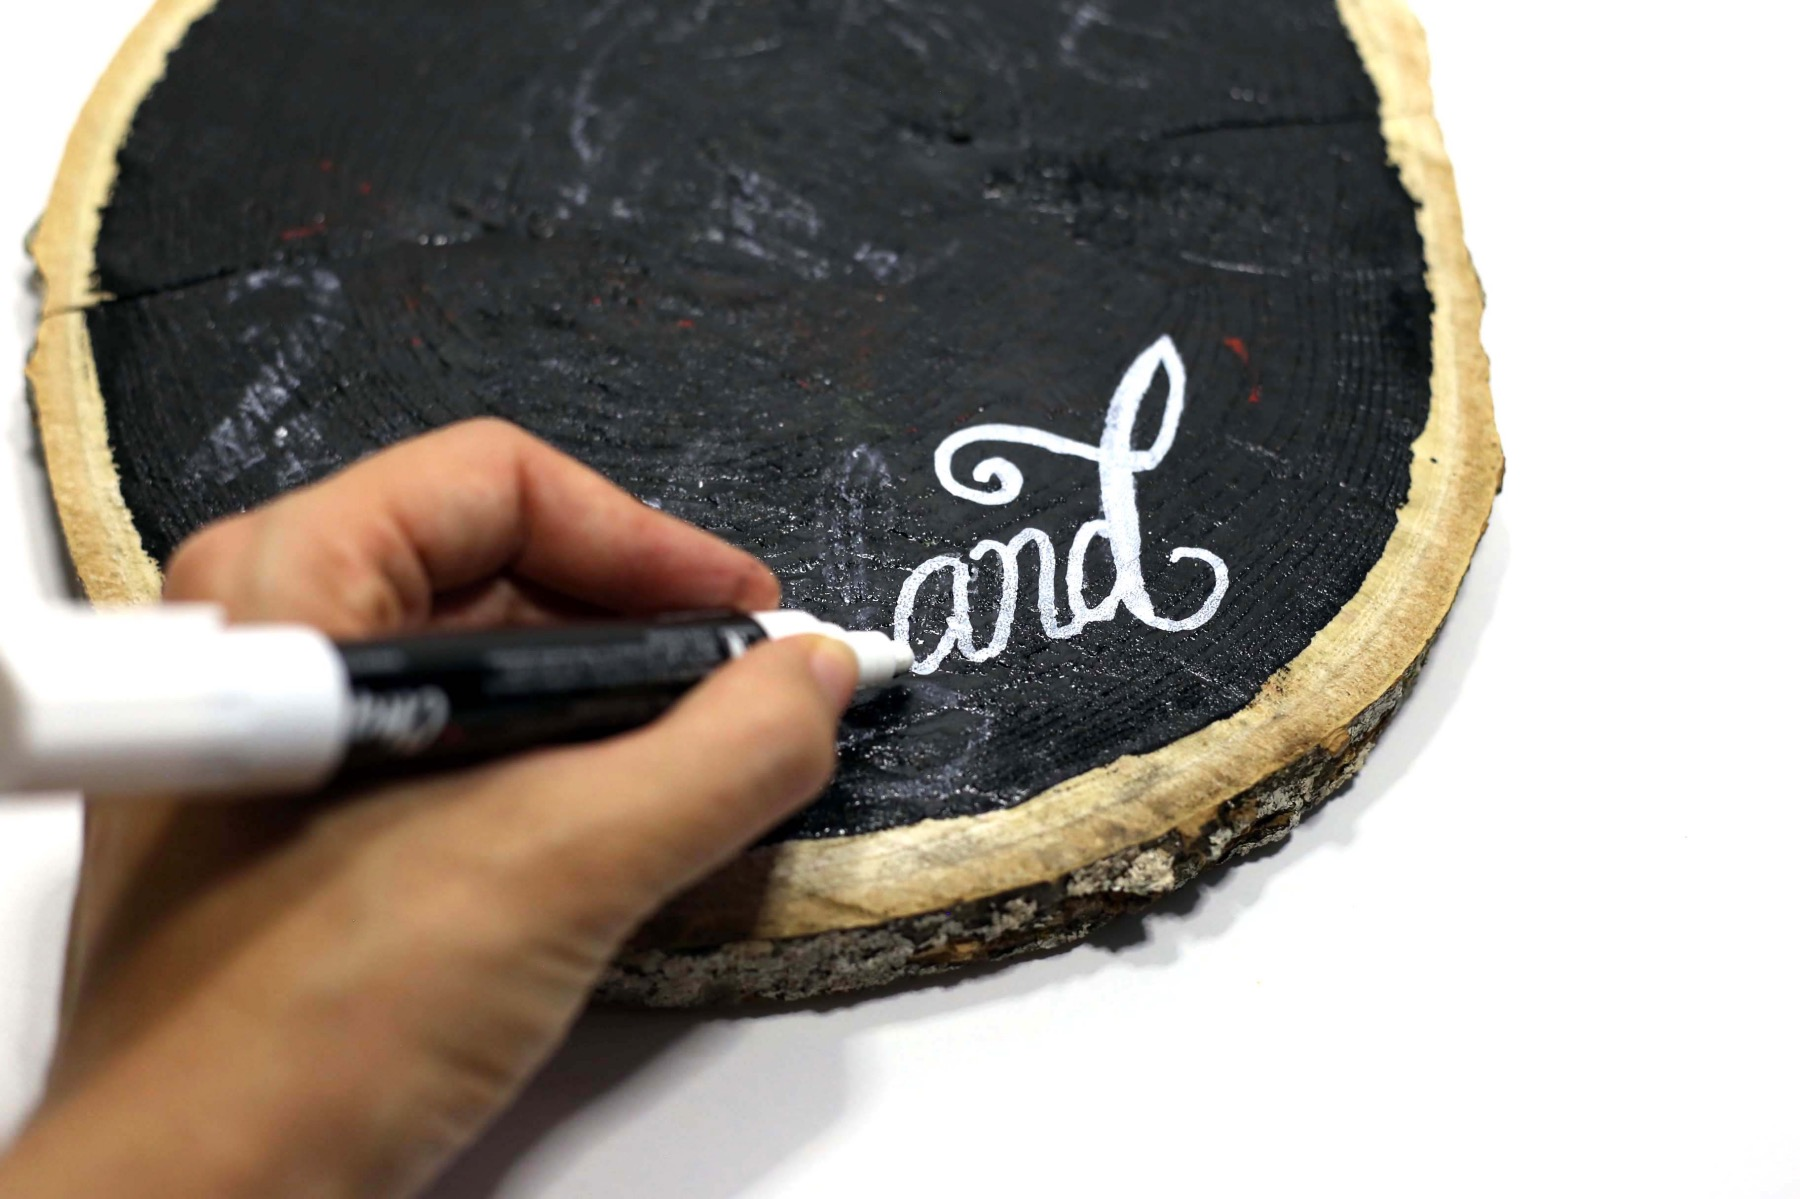 begin to add the chalk pen lettering wood sign diy